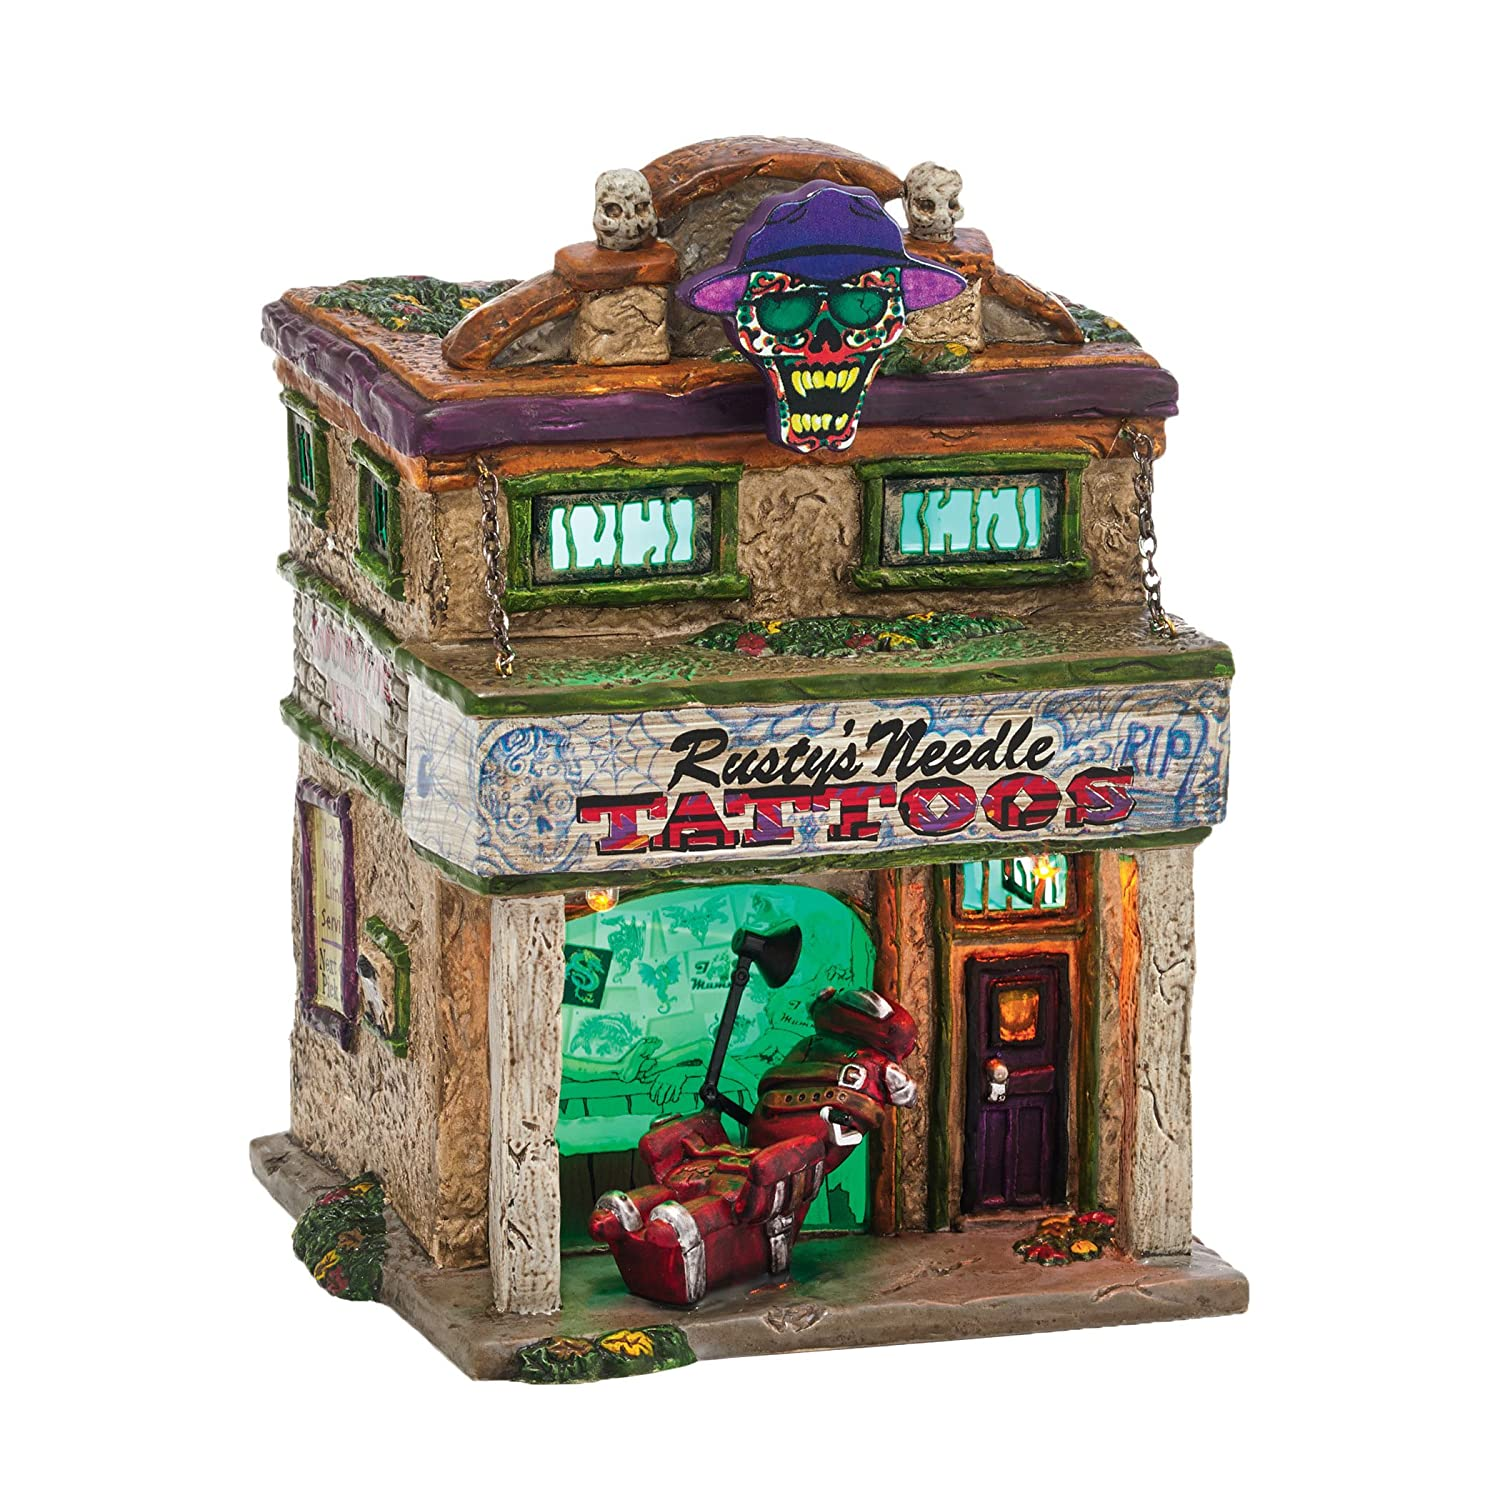 Department 56 Snow Village Halloween Rusty's Needle Lit House, 6.9-Inch